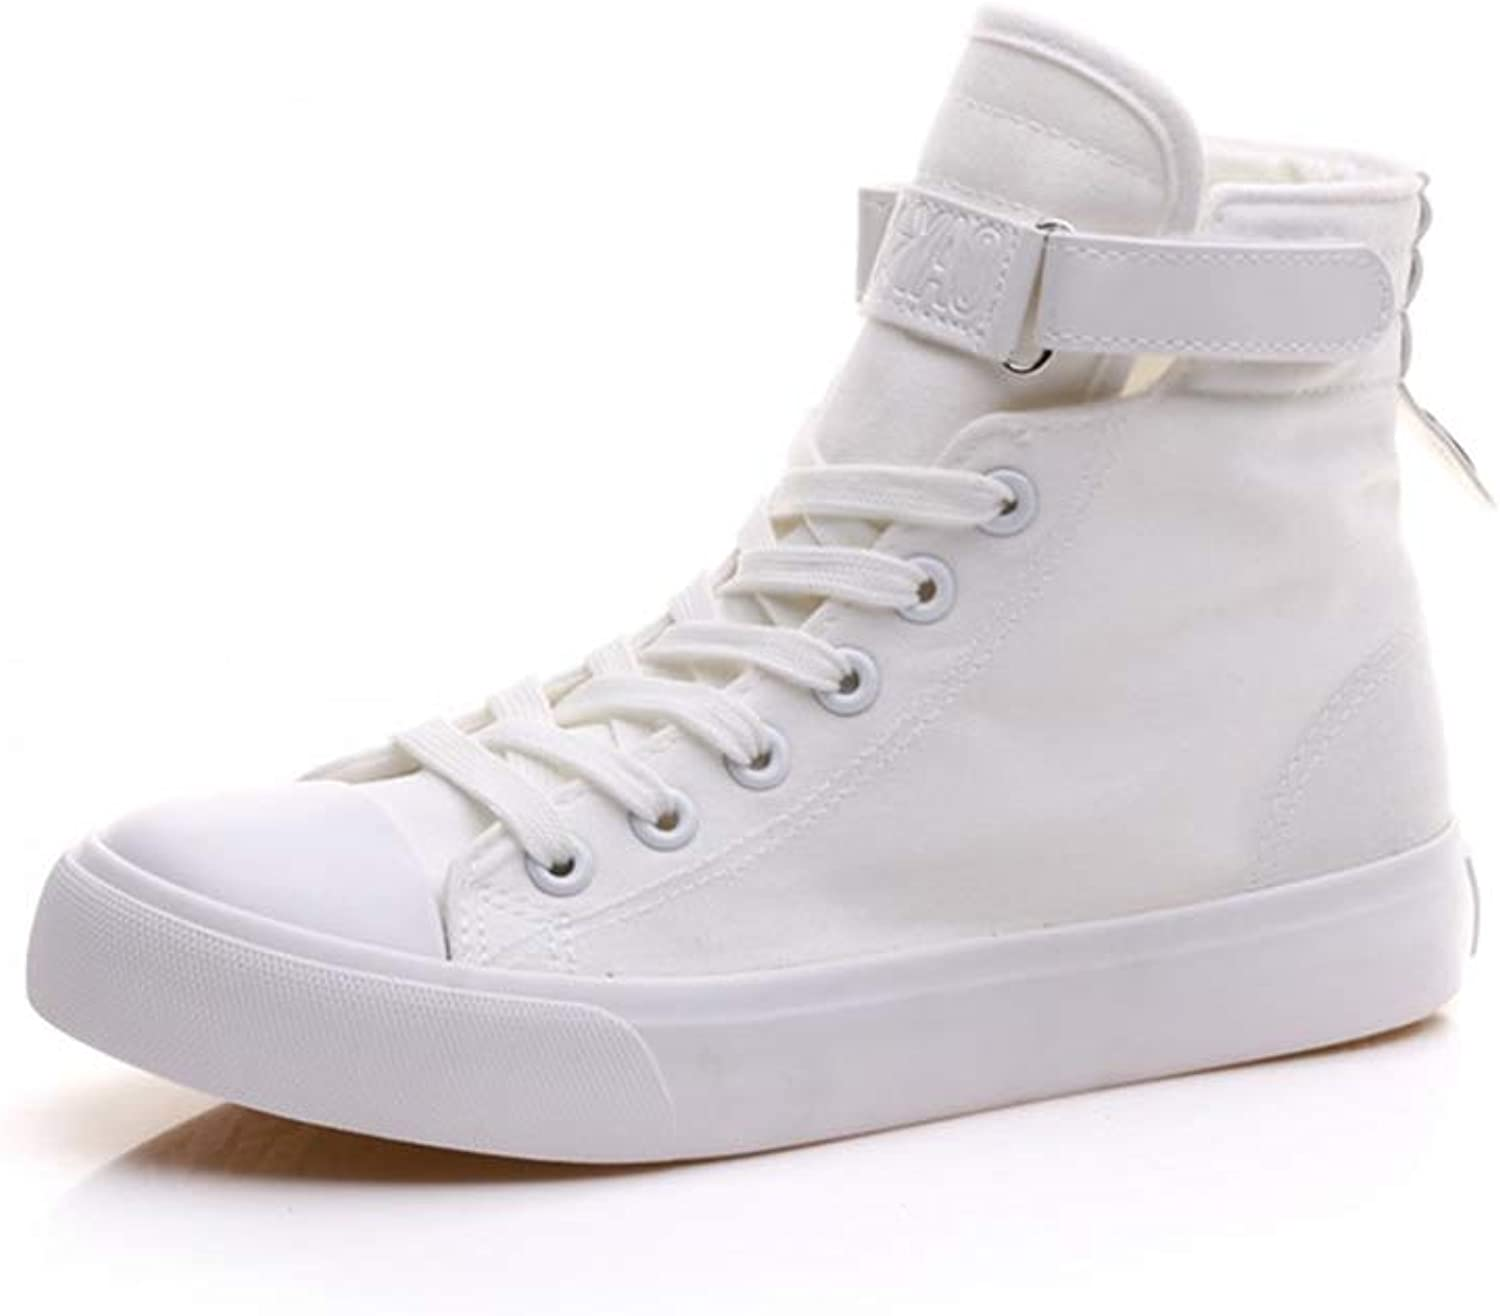 Meimeioo Women's Casual High Top Flat Canvas shoes Fashion Sneakers